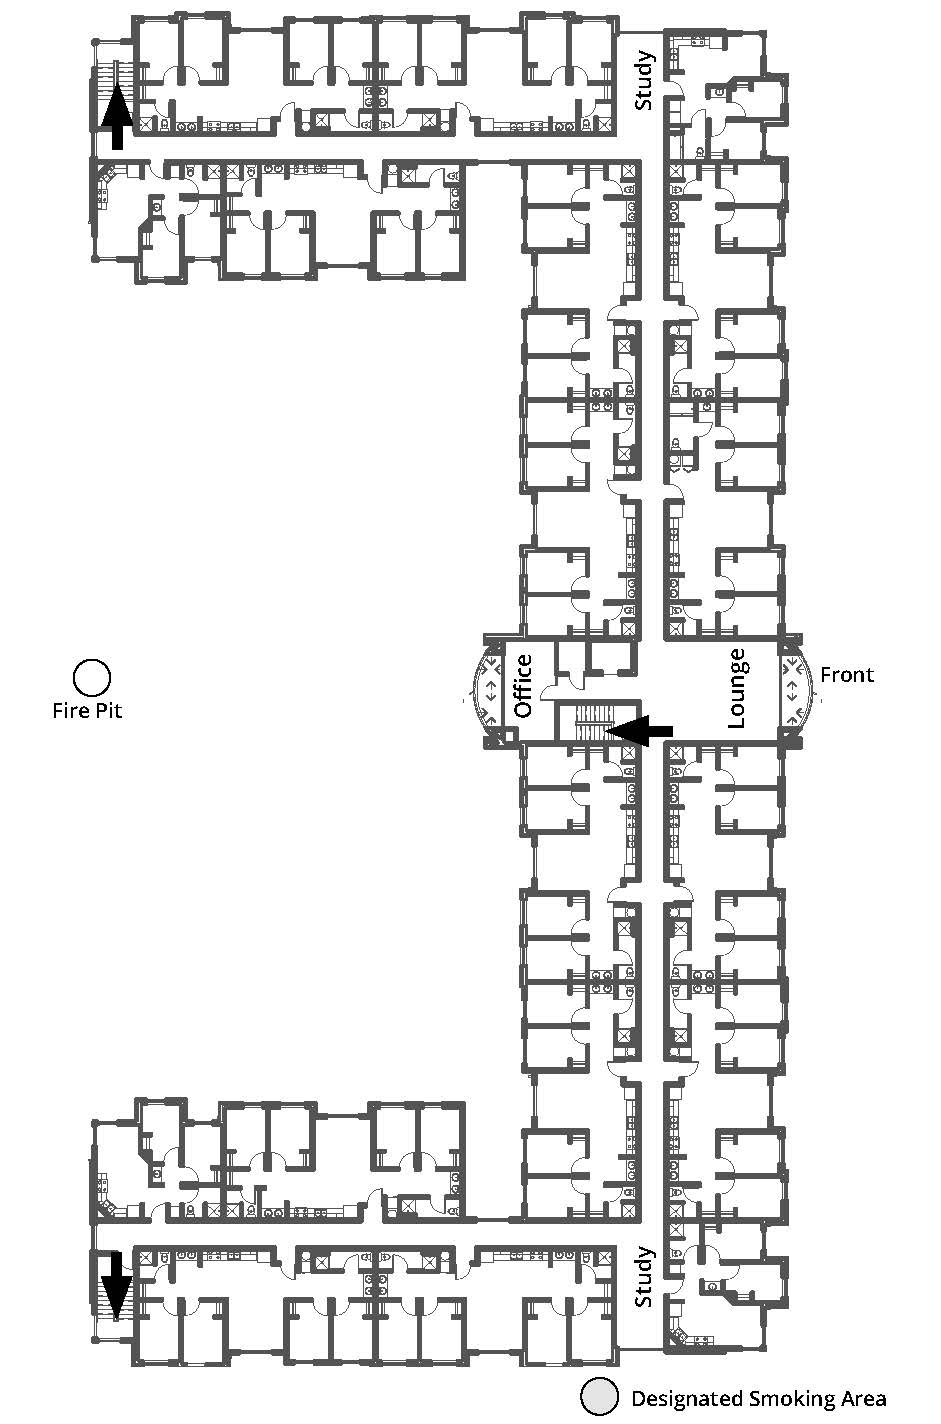 Beckwith Hall third floor plan